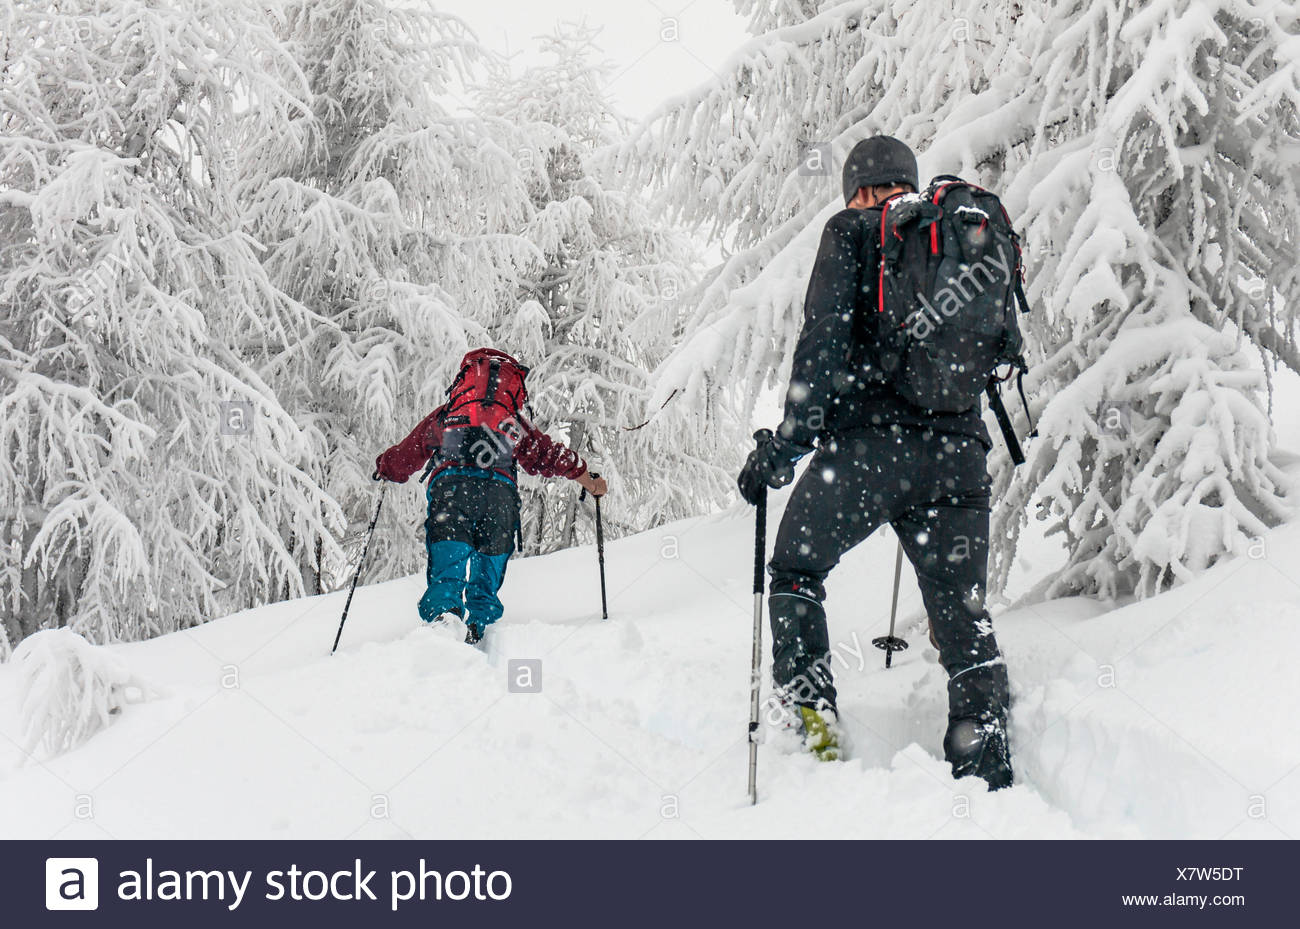 ski touring during a heavy snow fall at Cima della Rosetta,Orobie, Valgerola, Valtellina, Italy, Alps - Stock Image